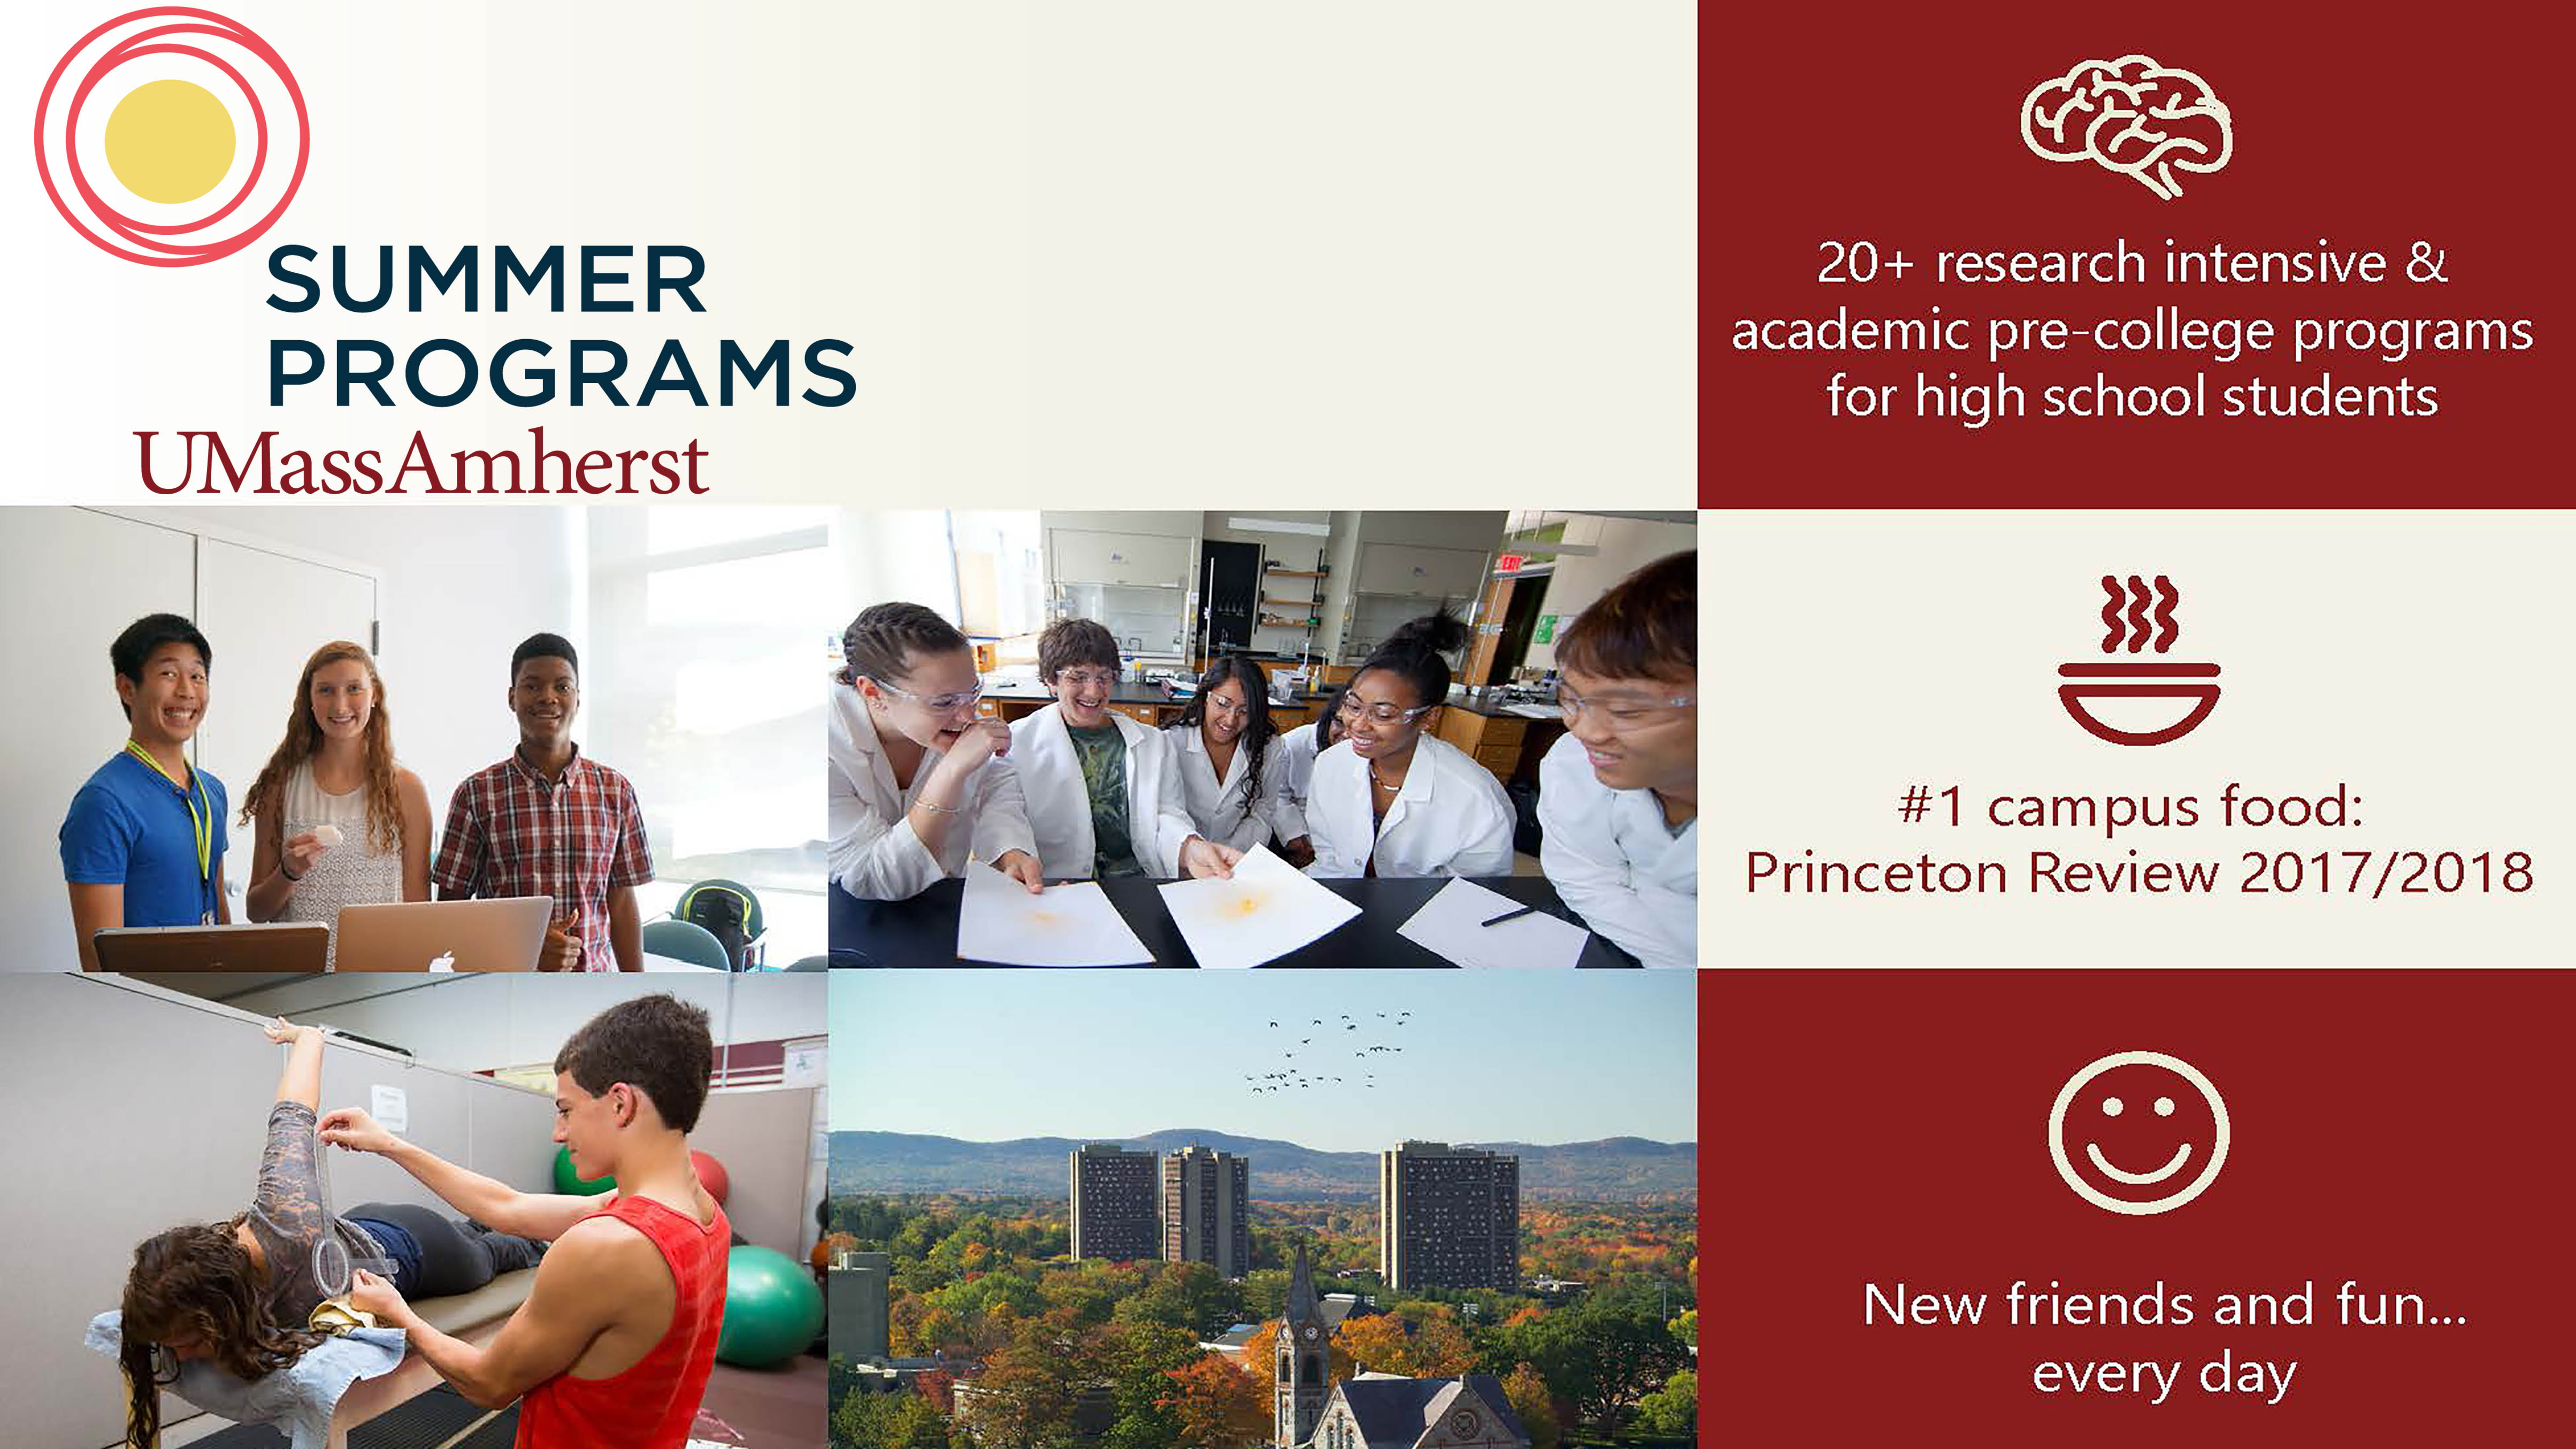 Summer Program - Marine Biology | Research Intensive Lab Placements with University Faculty at UMass Amherst